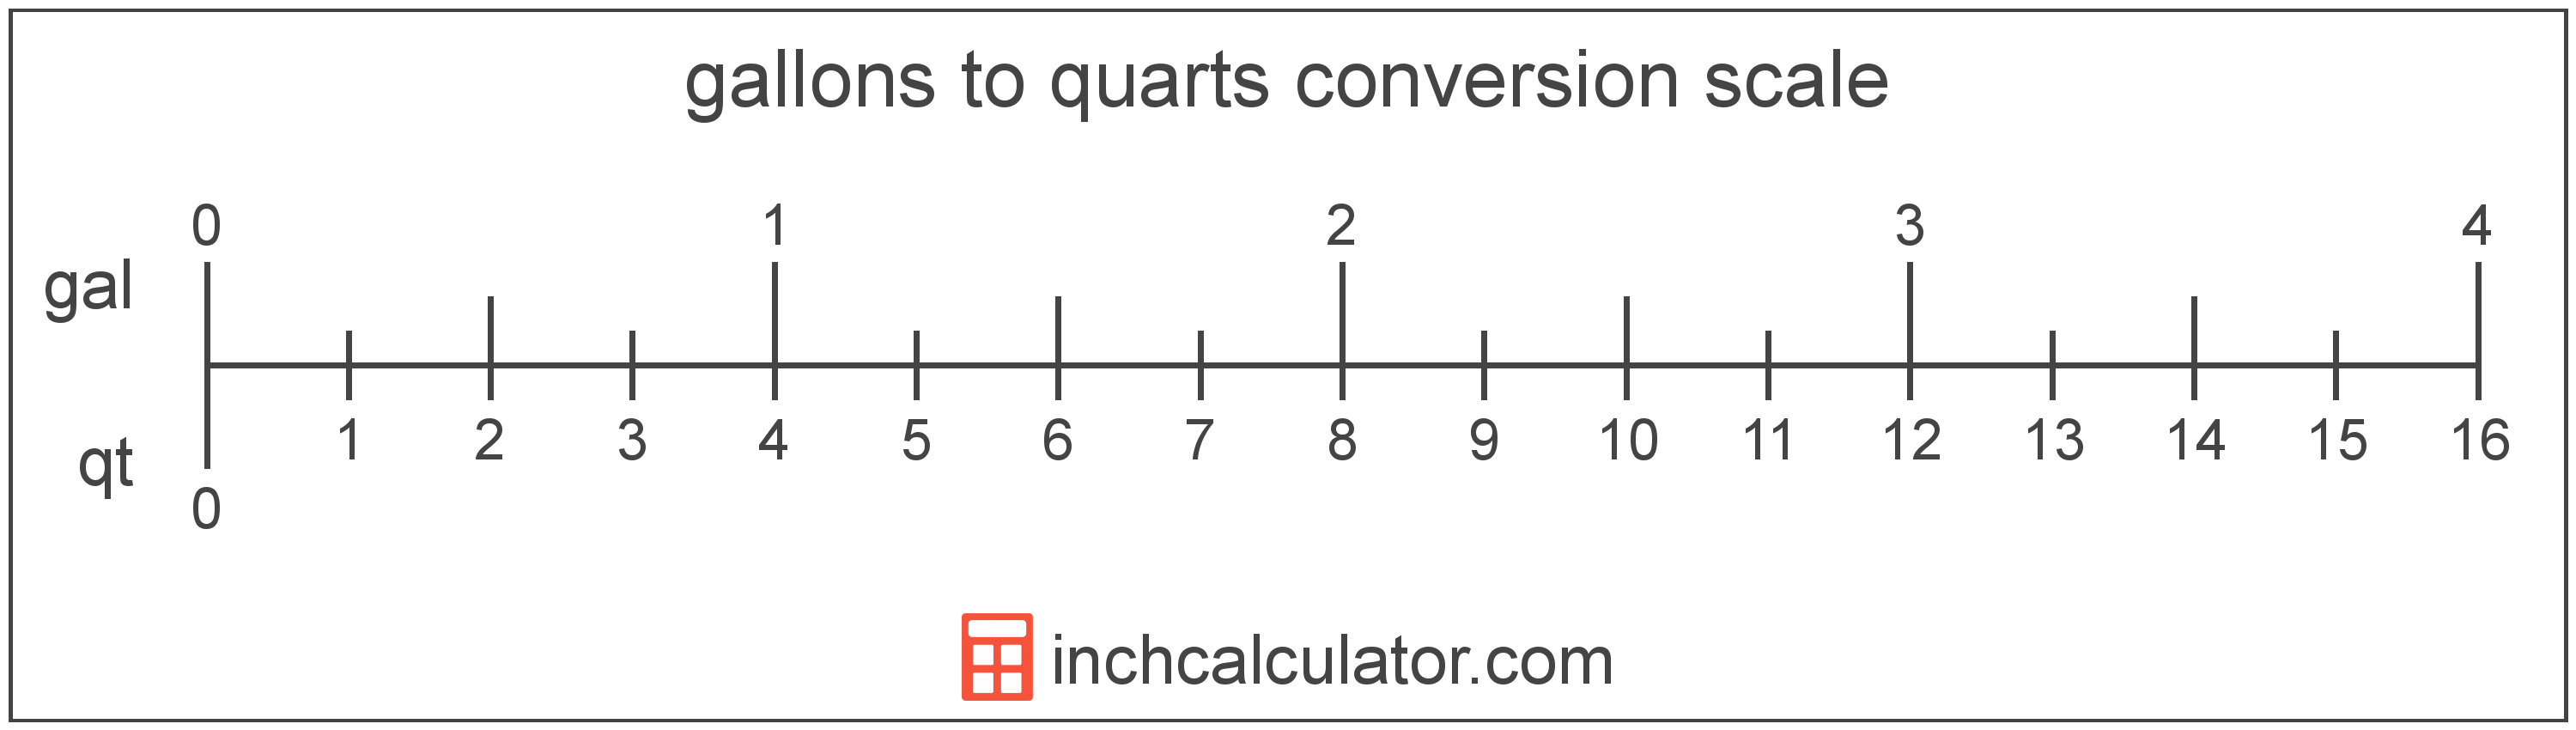 Quarts To Gallons Conversion Qt To Gal Inch Calculator